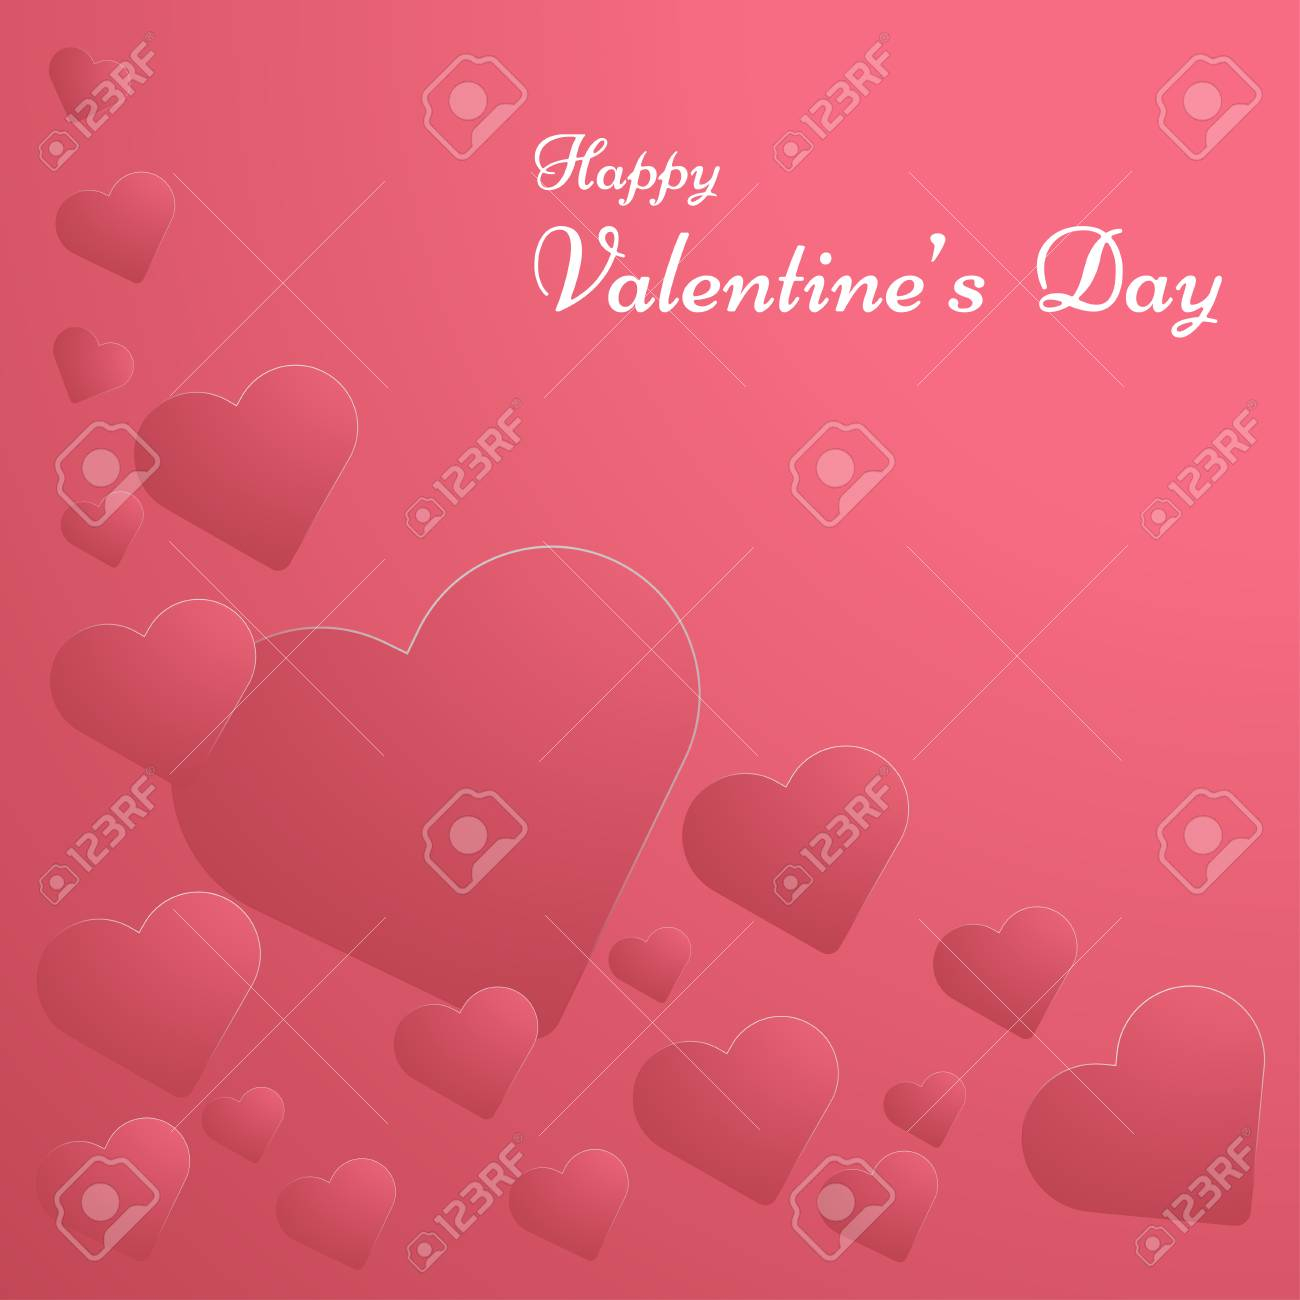 photo stock vector vector illustration of happy valentines day with paper hearts in red background template for valenti